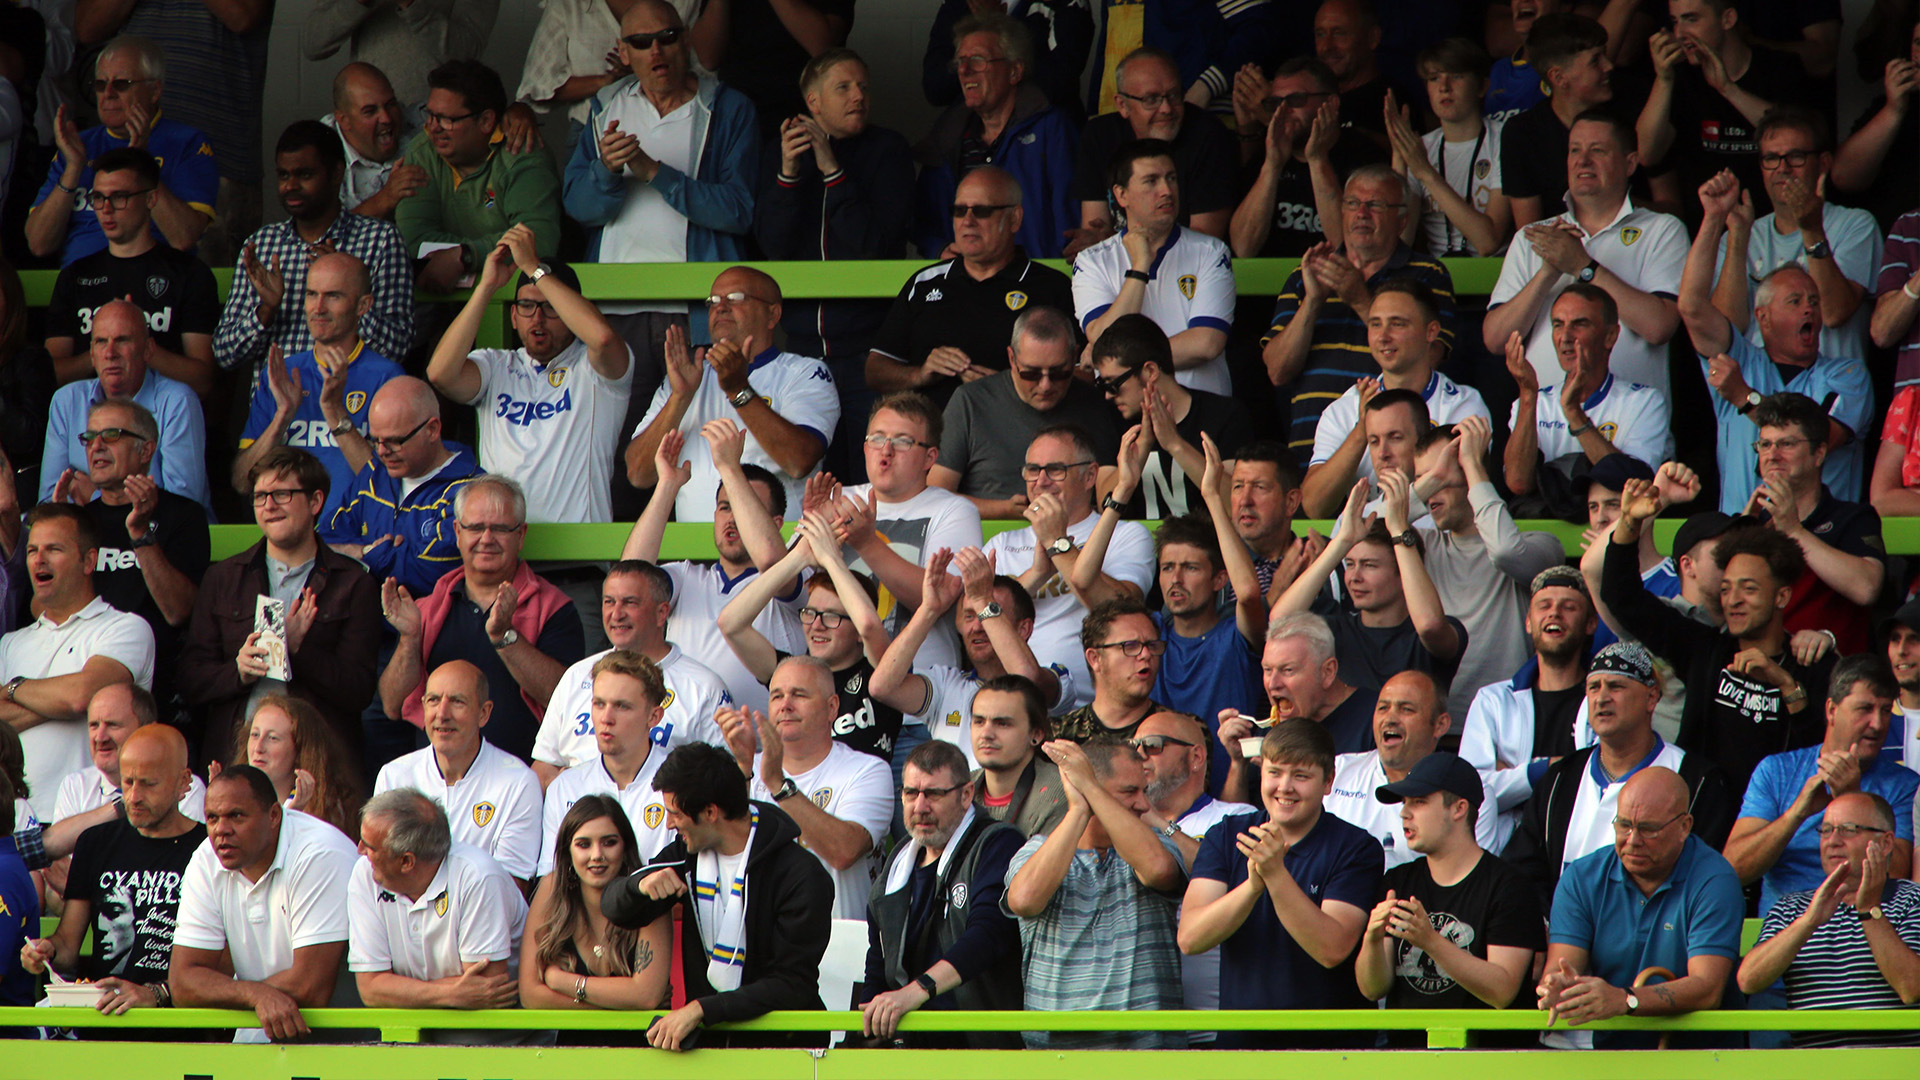 Leeds fans Forest Green